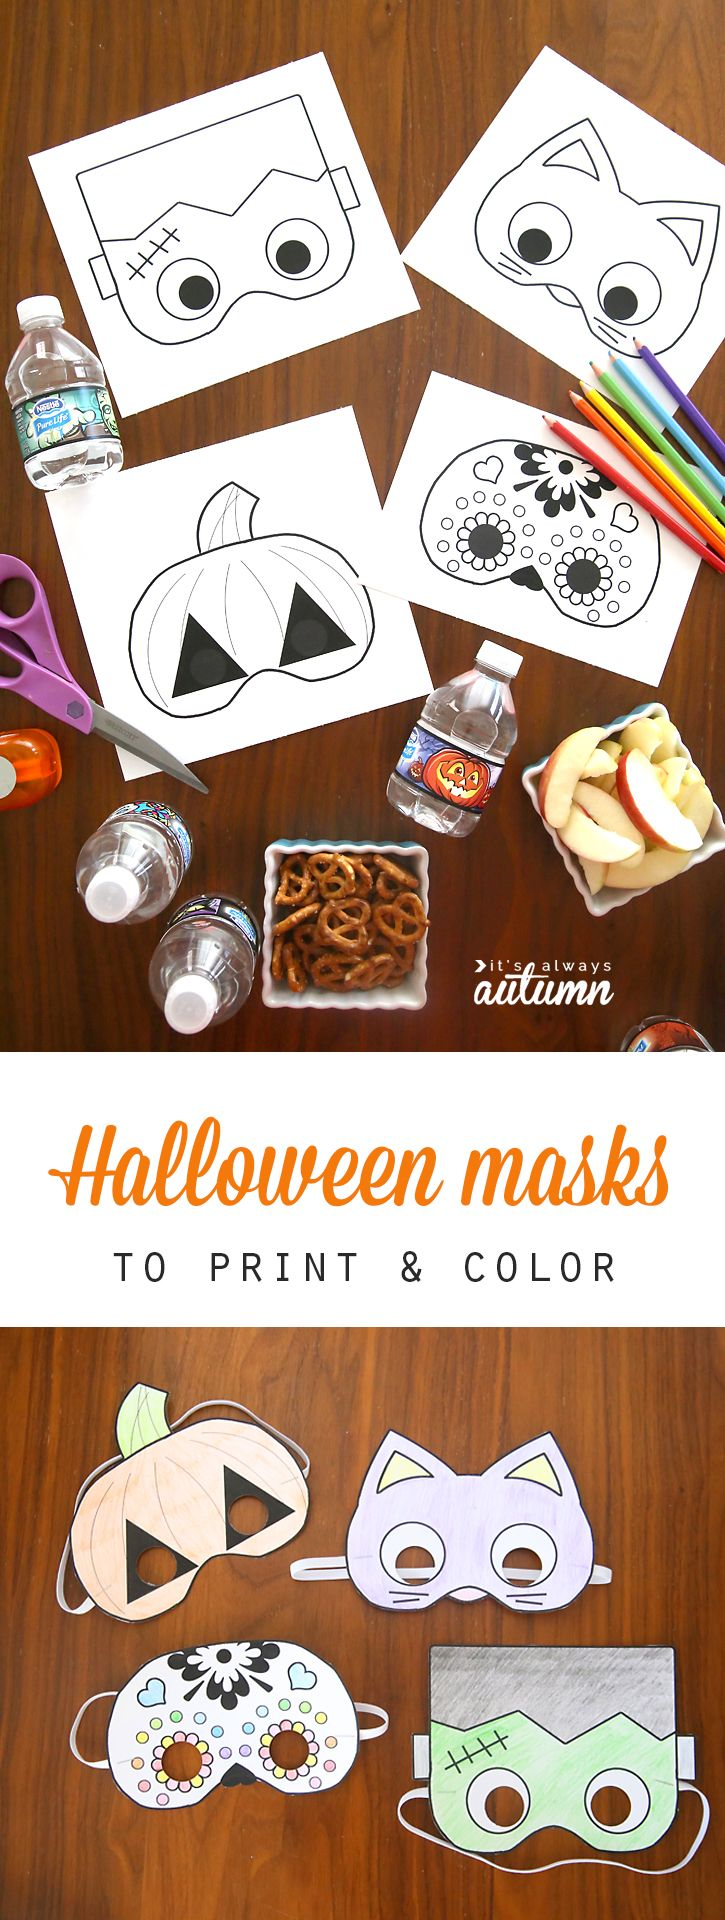 halloween masks to print and color classroom halloween partyfun halloween craftshalloween